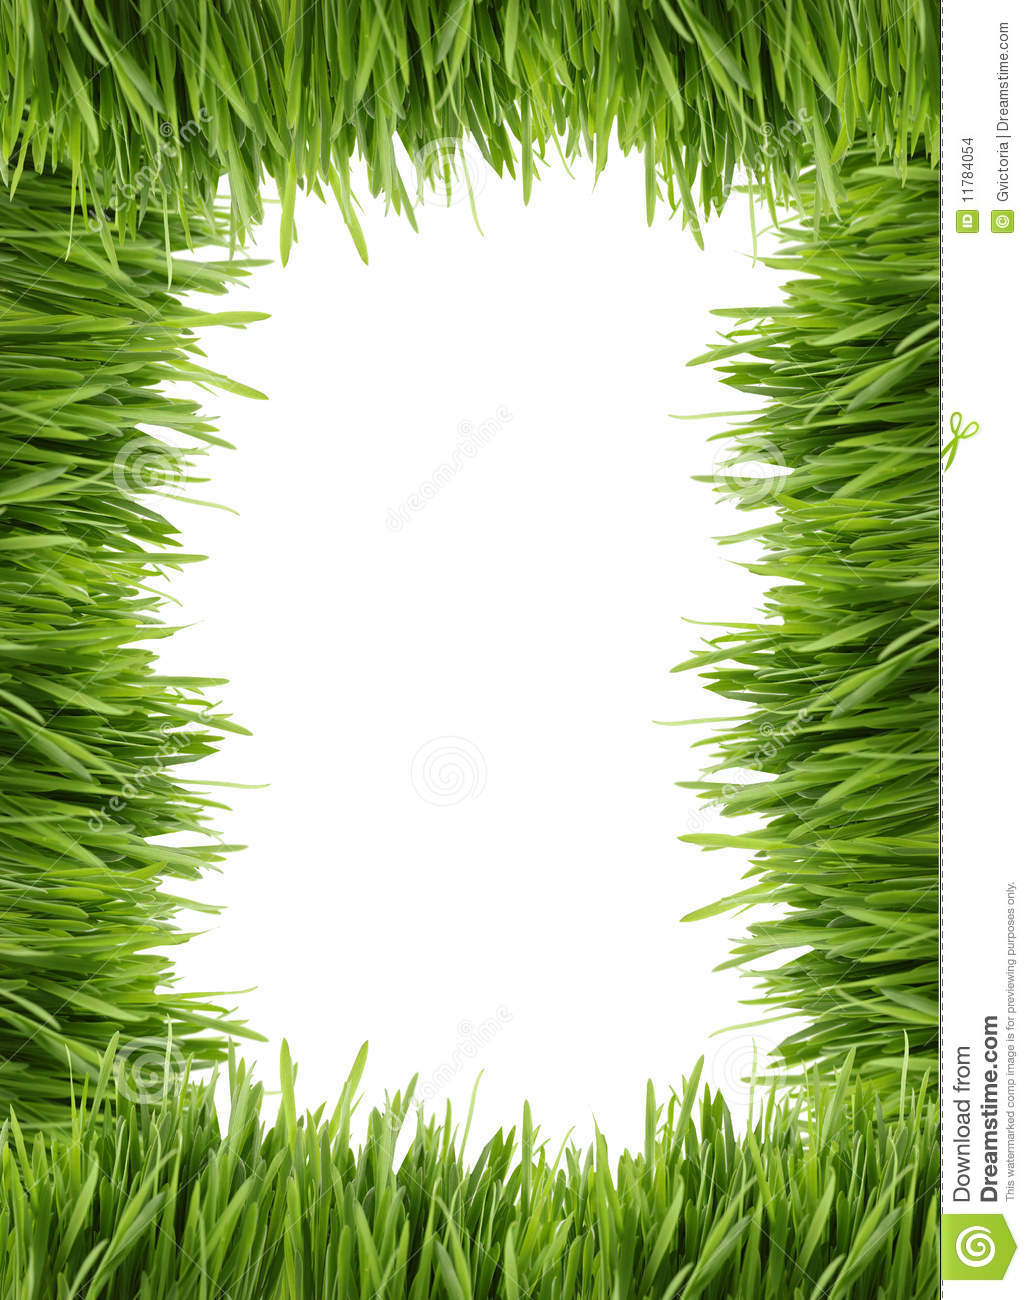 Tall grass border or frame stock images image 11784054 for Tall border grass